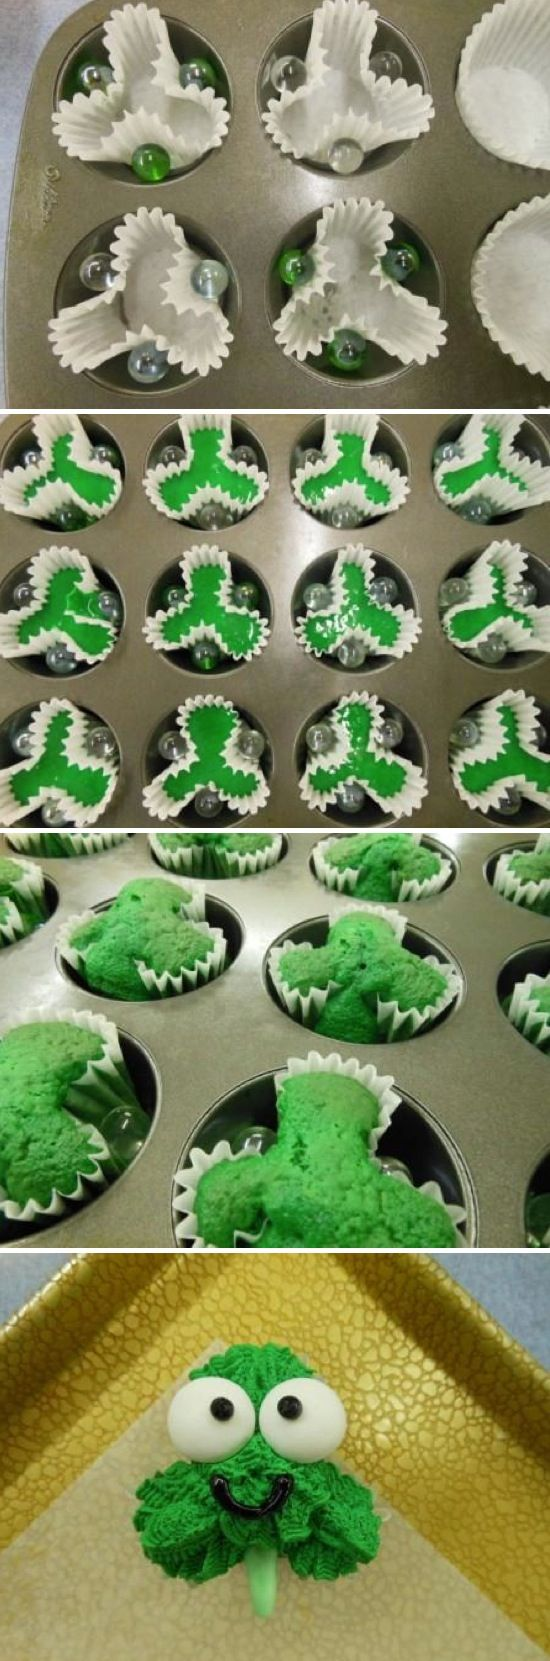 17 Best images about St. Patrick's Day Green & White on Pinterest ...